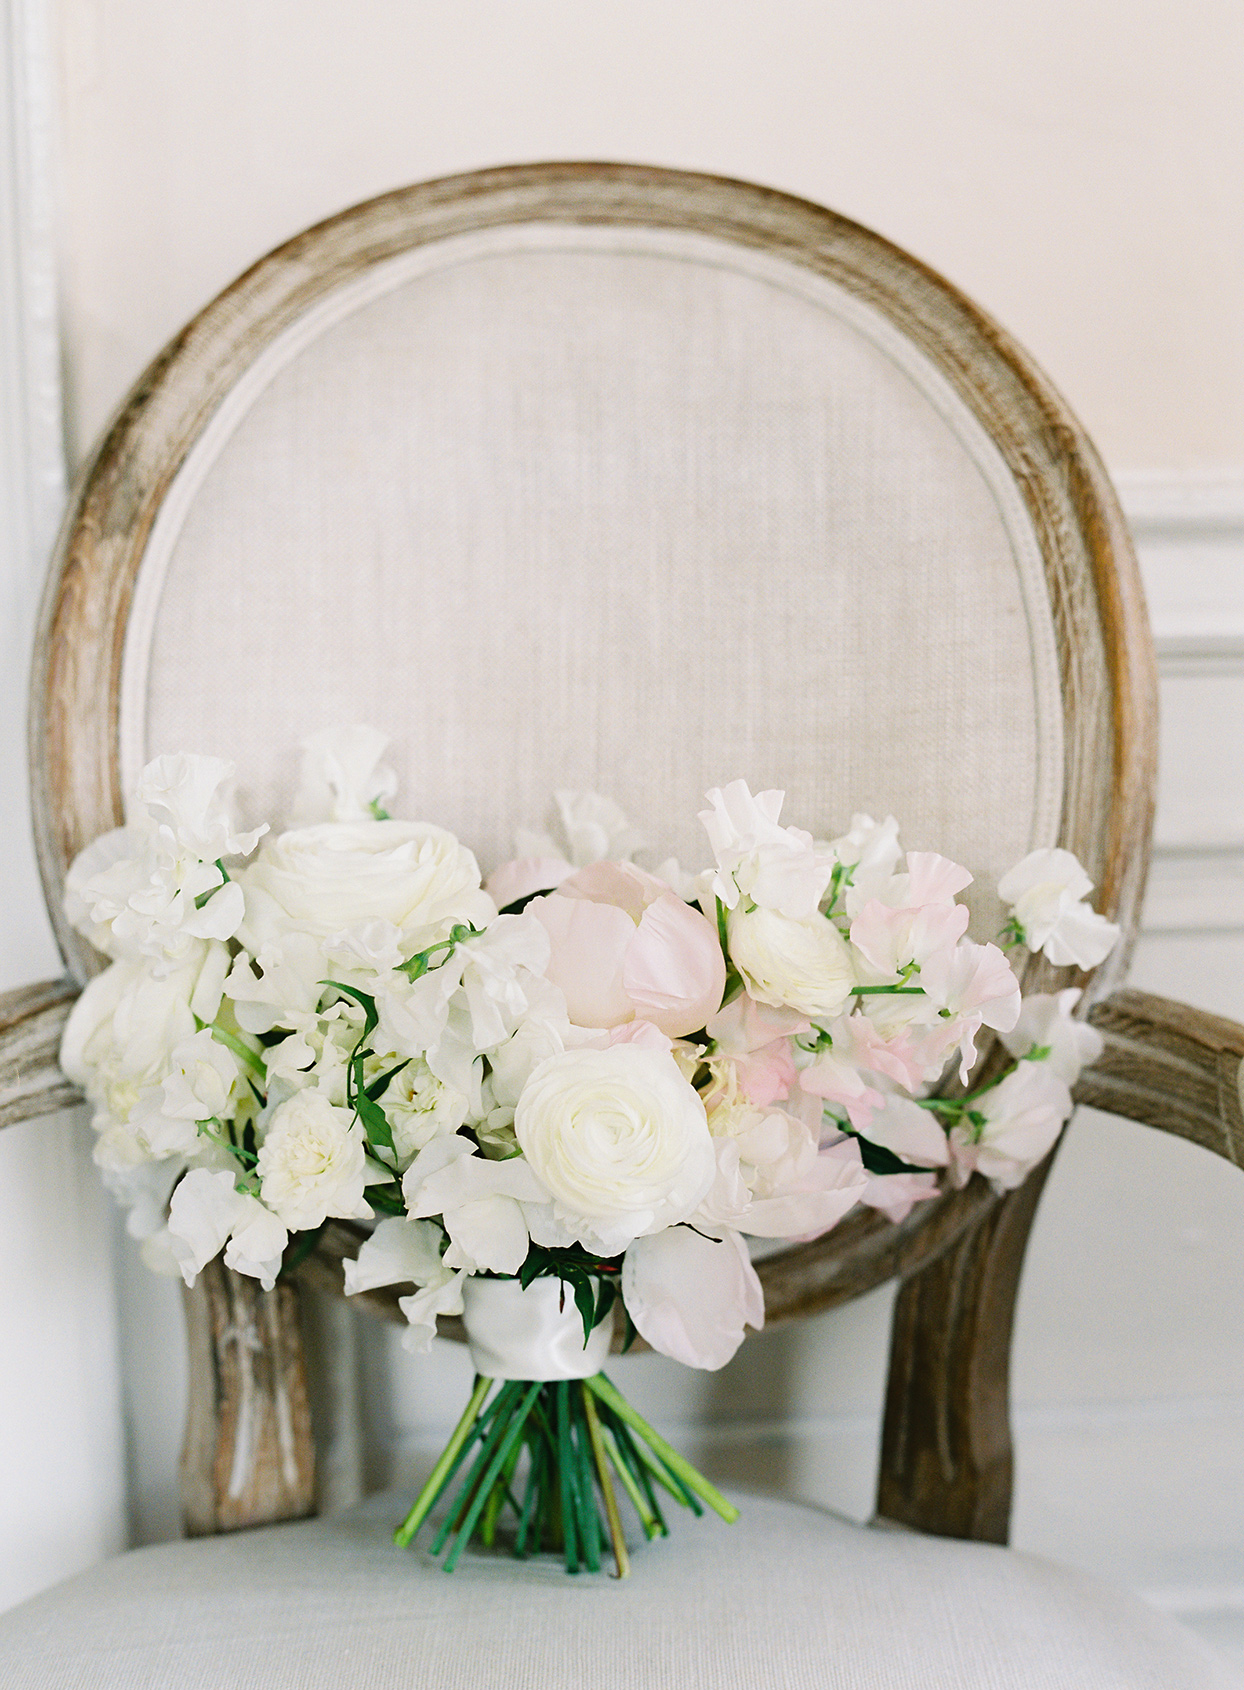 paula terence wedding bouquet on chair